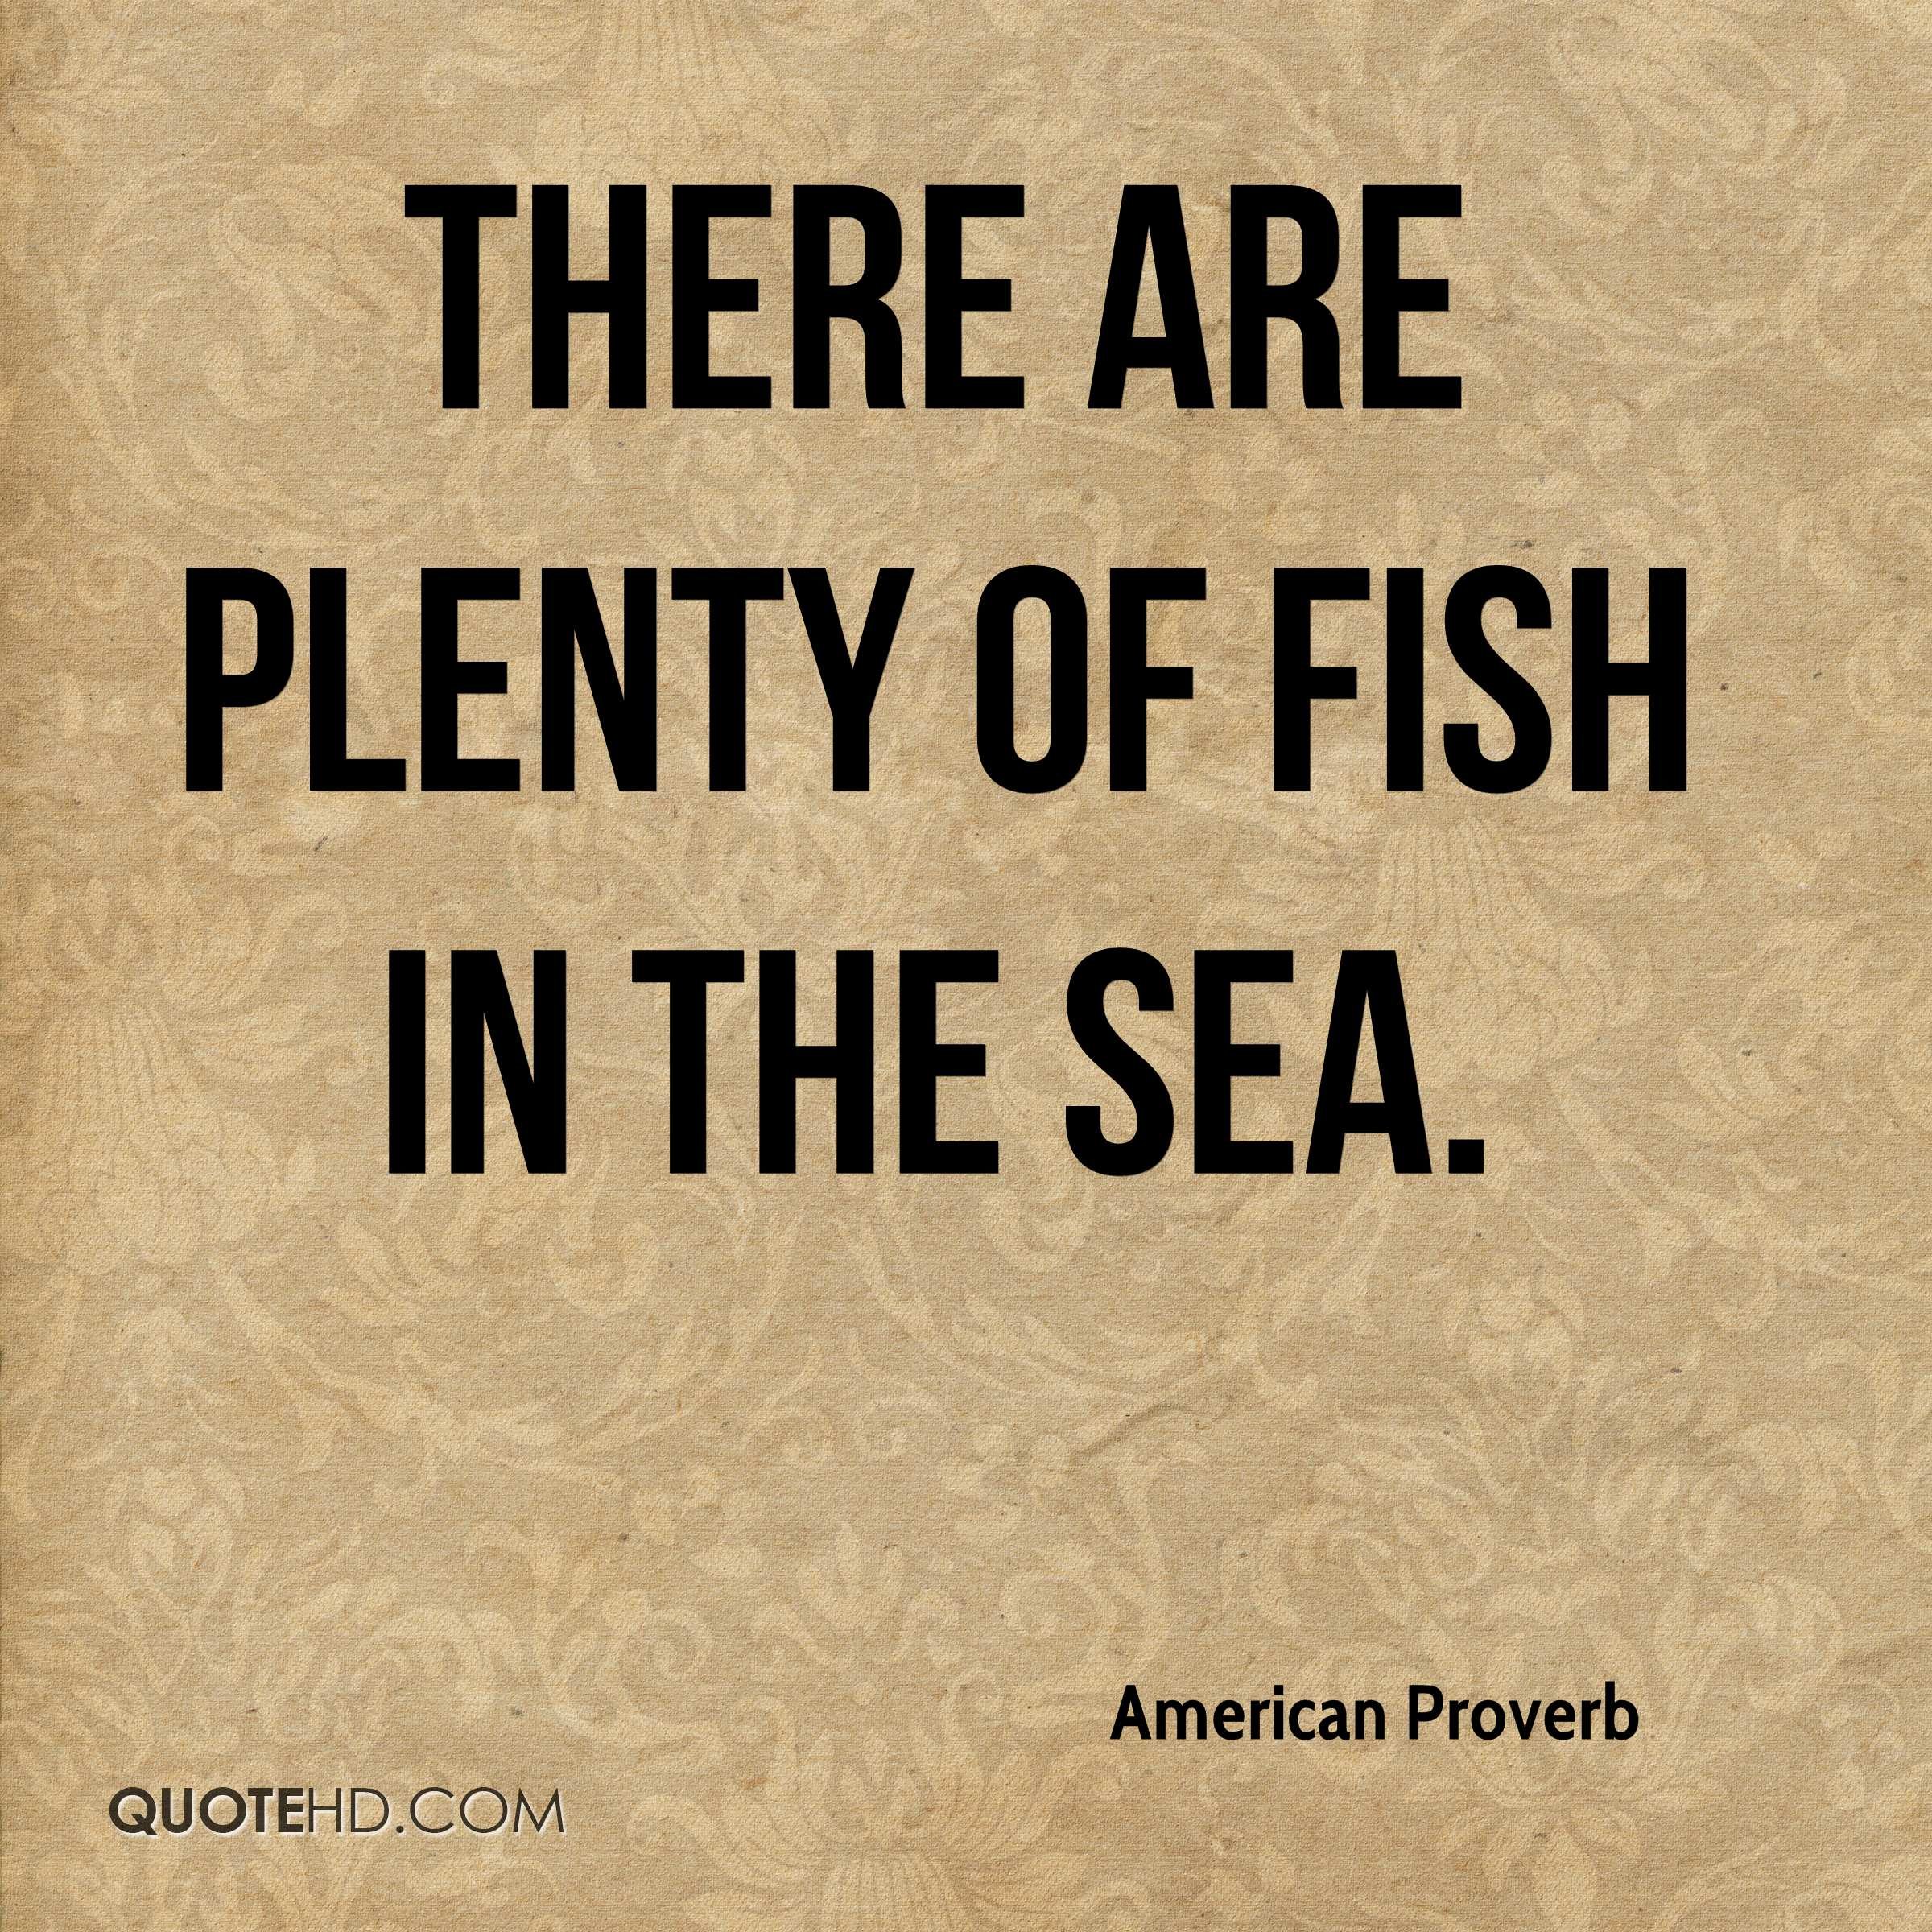 American proverb quotes quotehd for Browse plenty of fish